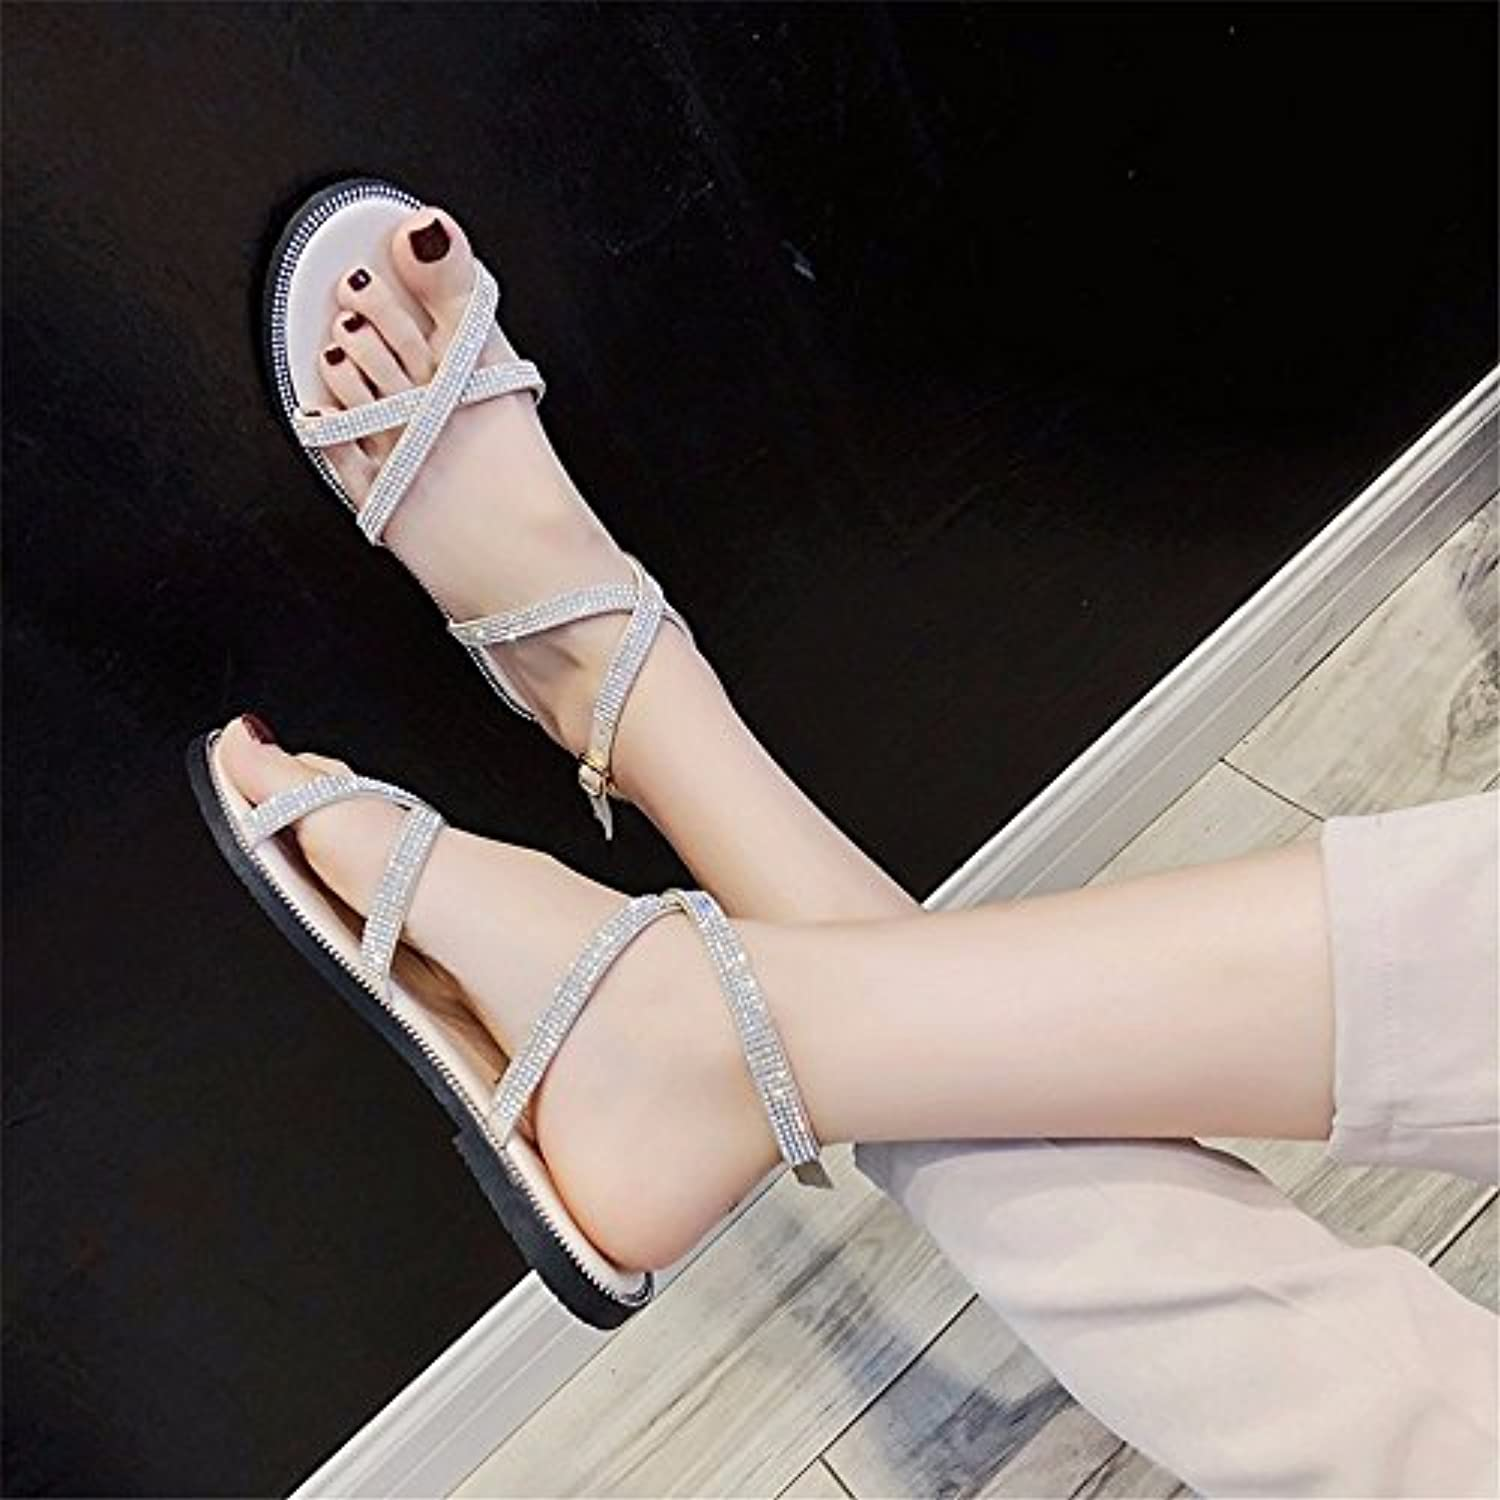 ca72f6e64a01 YMFIE Women s Summer Cross Rhinestone Open Open Open Toe Flat Sandals Beach  Shoes B07FHL2KPQ Parent a36668